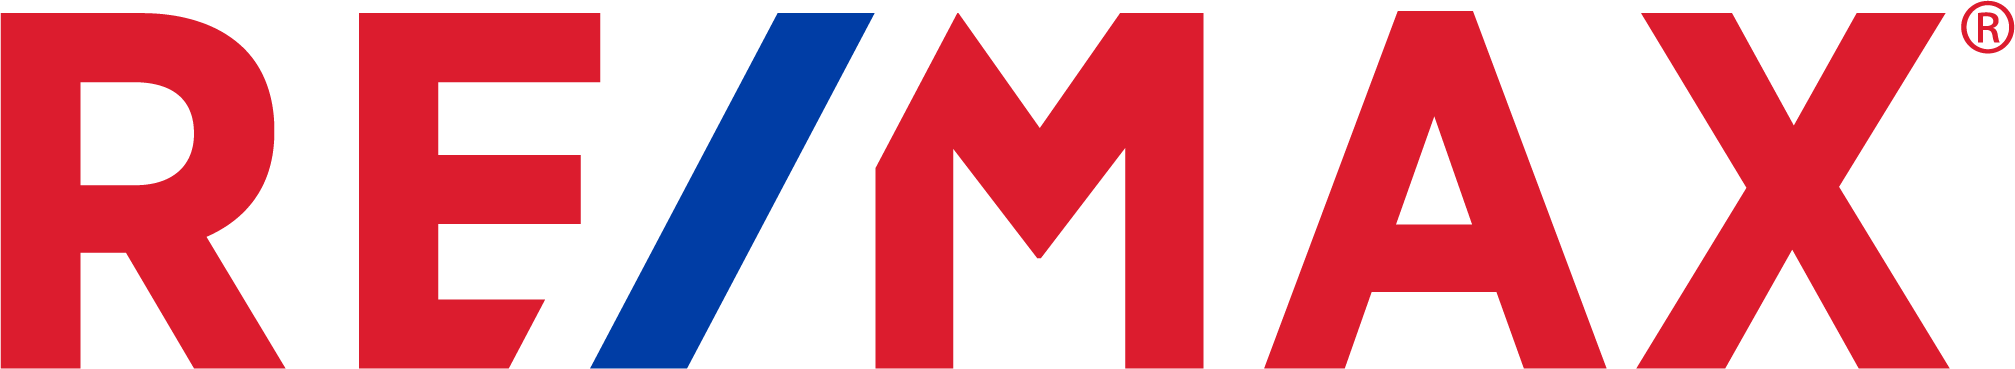 REMAX_mastrLogotype_RGB_R.png